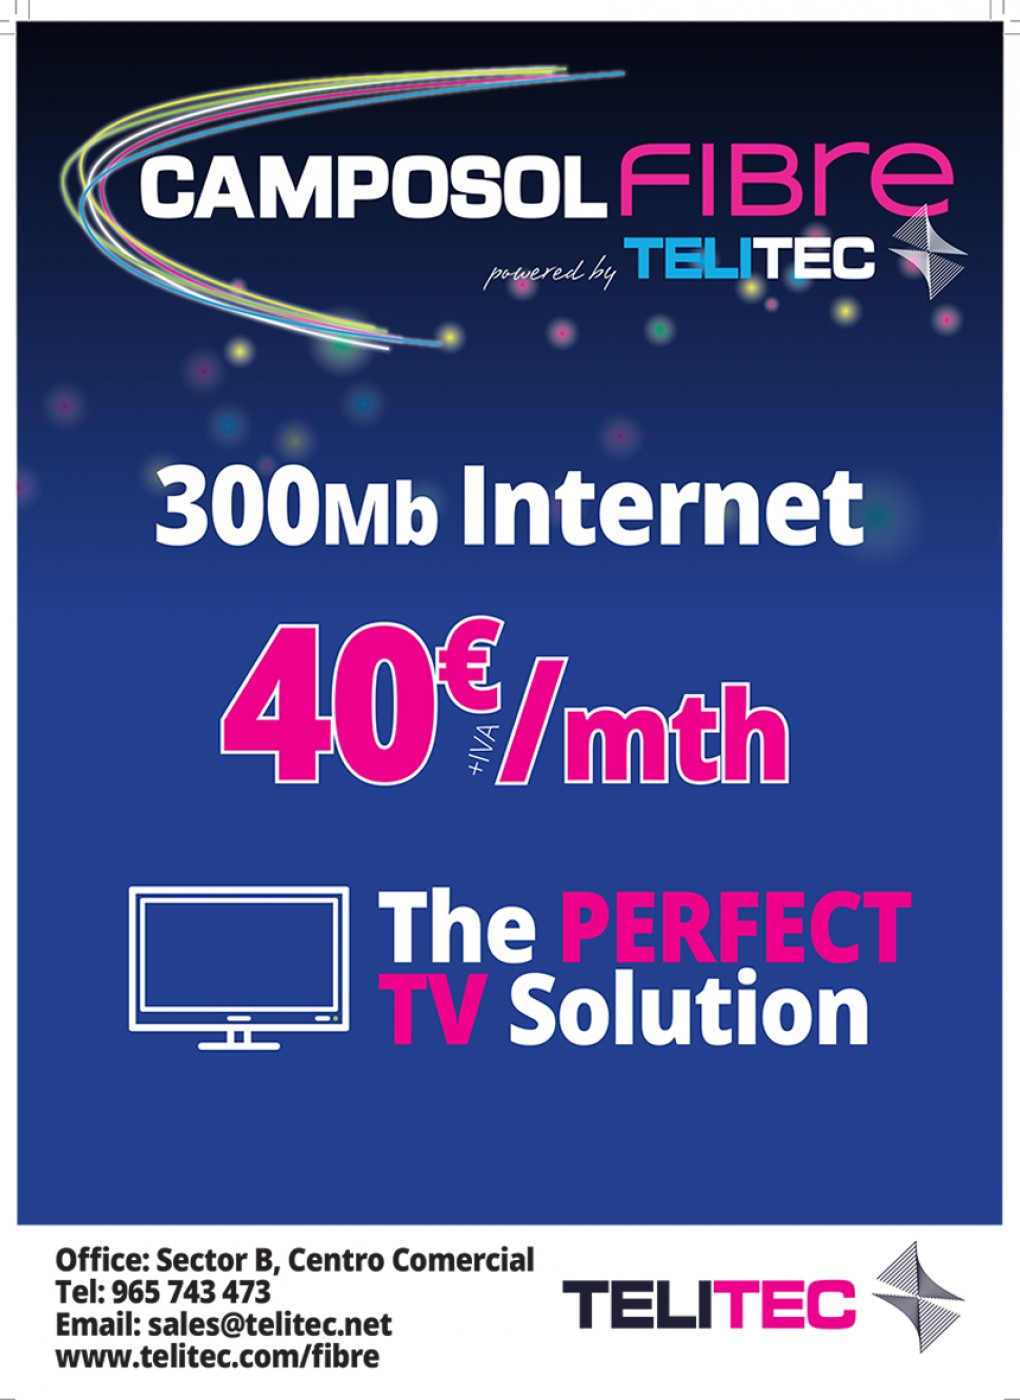 Telitec High Speed Internet and UK TV Supplier, Camposol